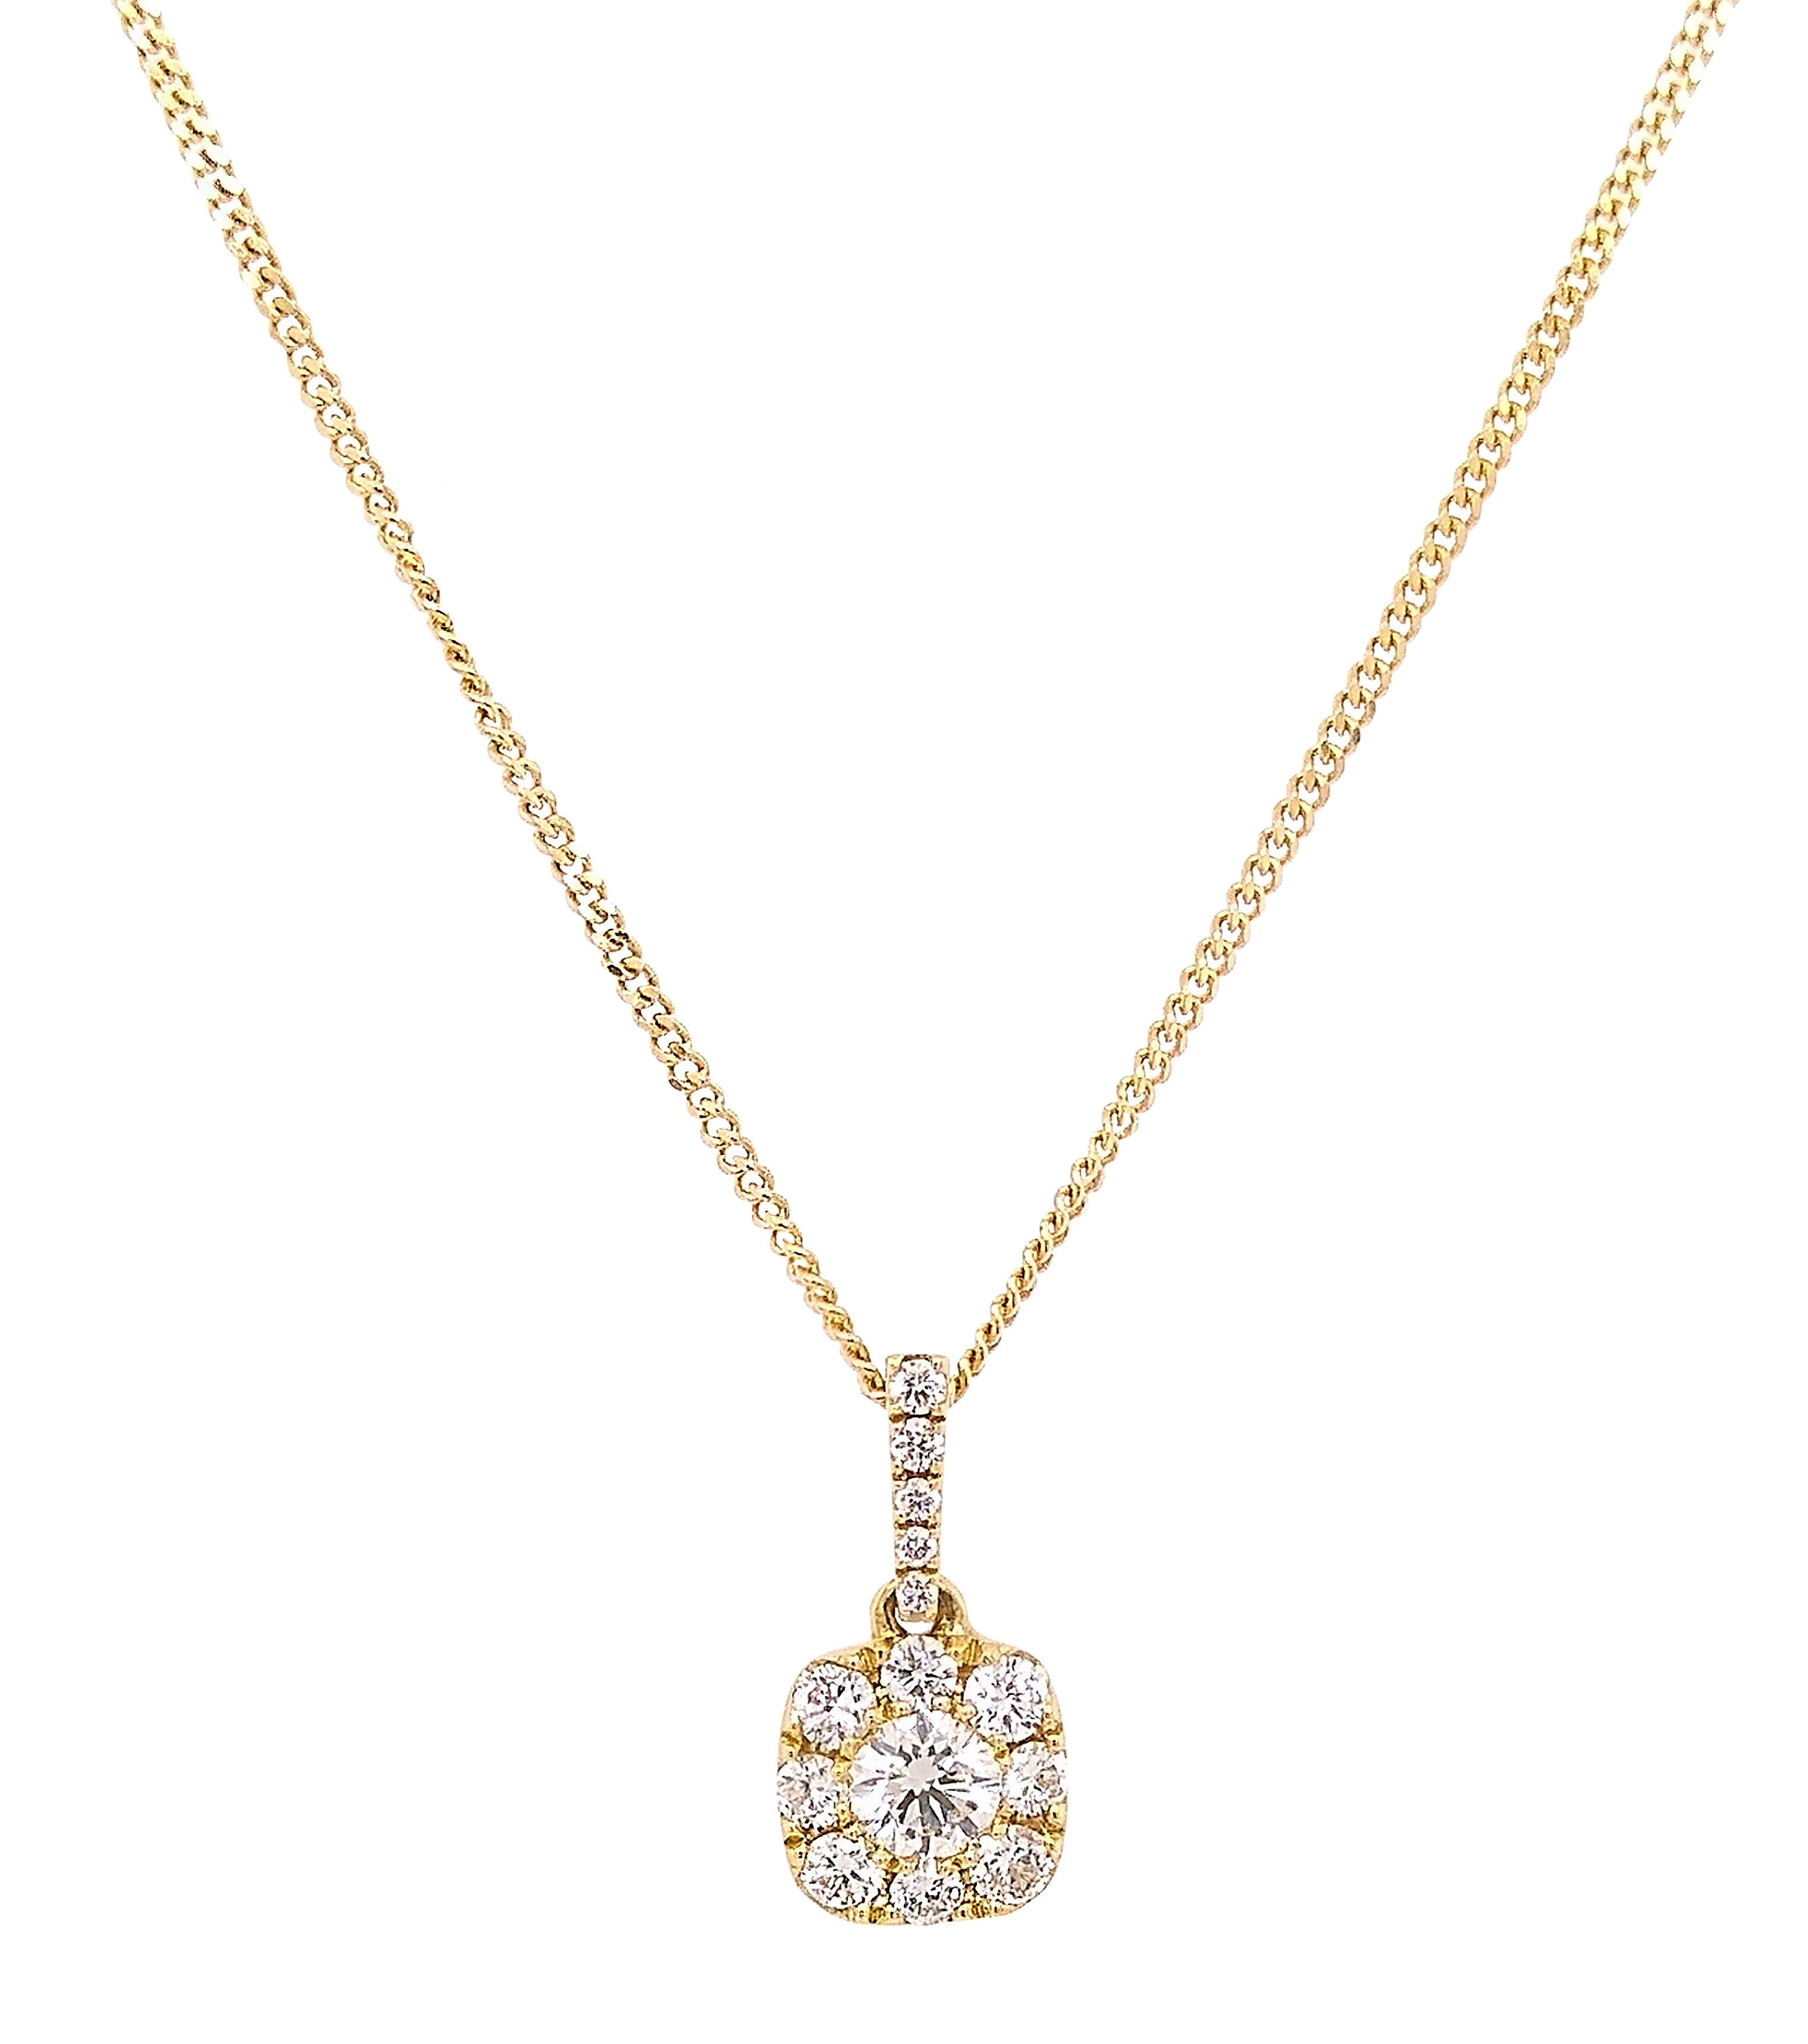 18ct Yellow Gold Pave Set Diamond Soft Square Pendant & Chain